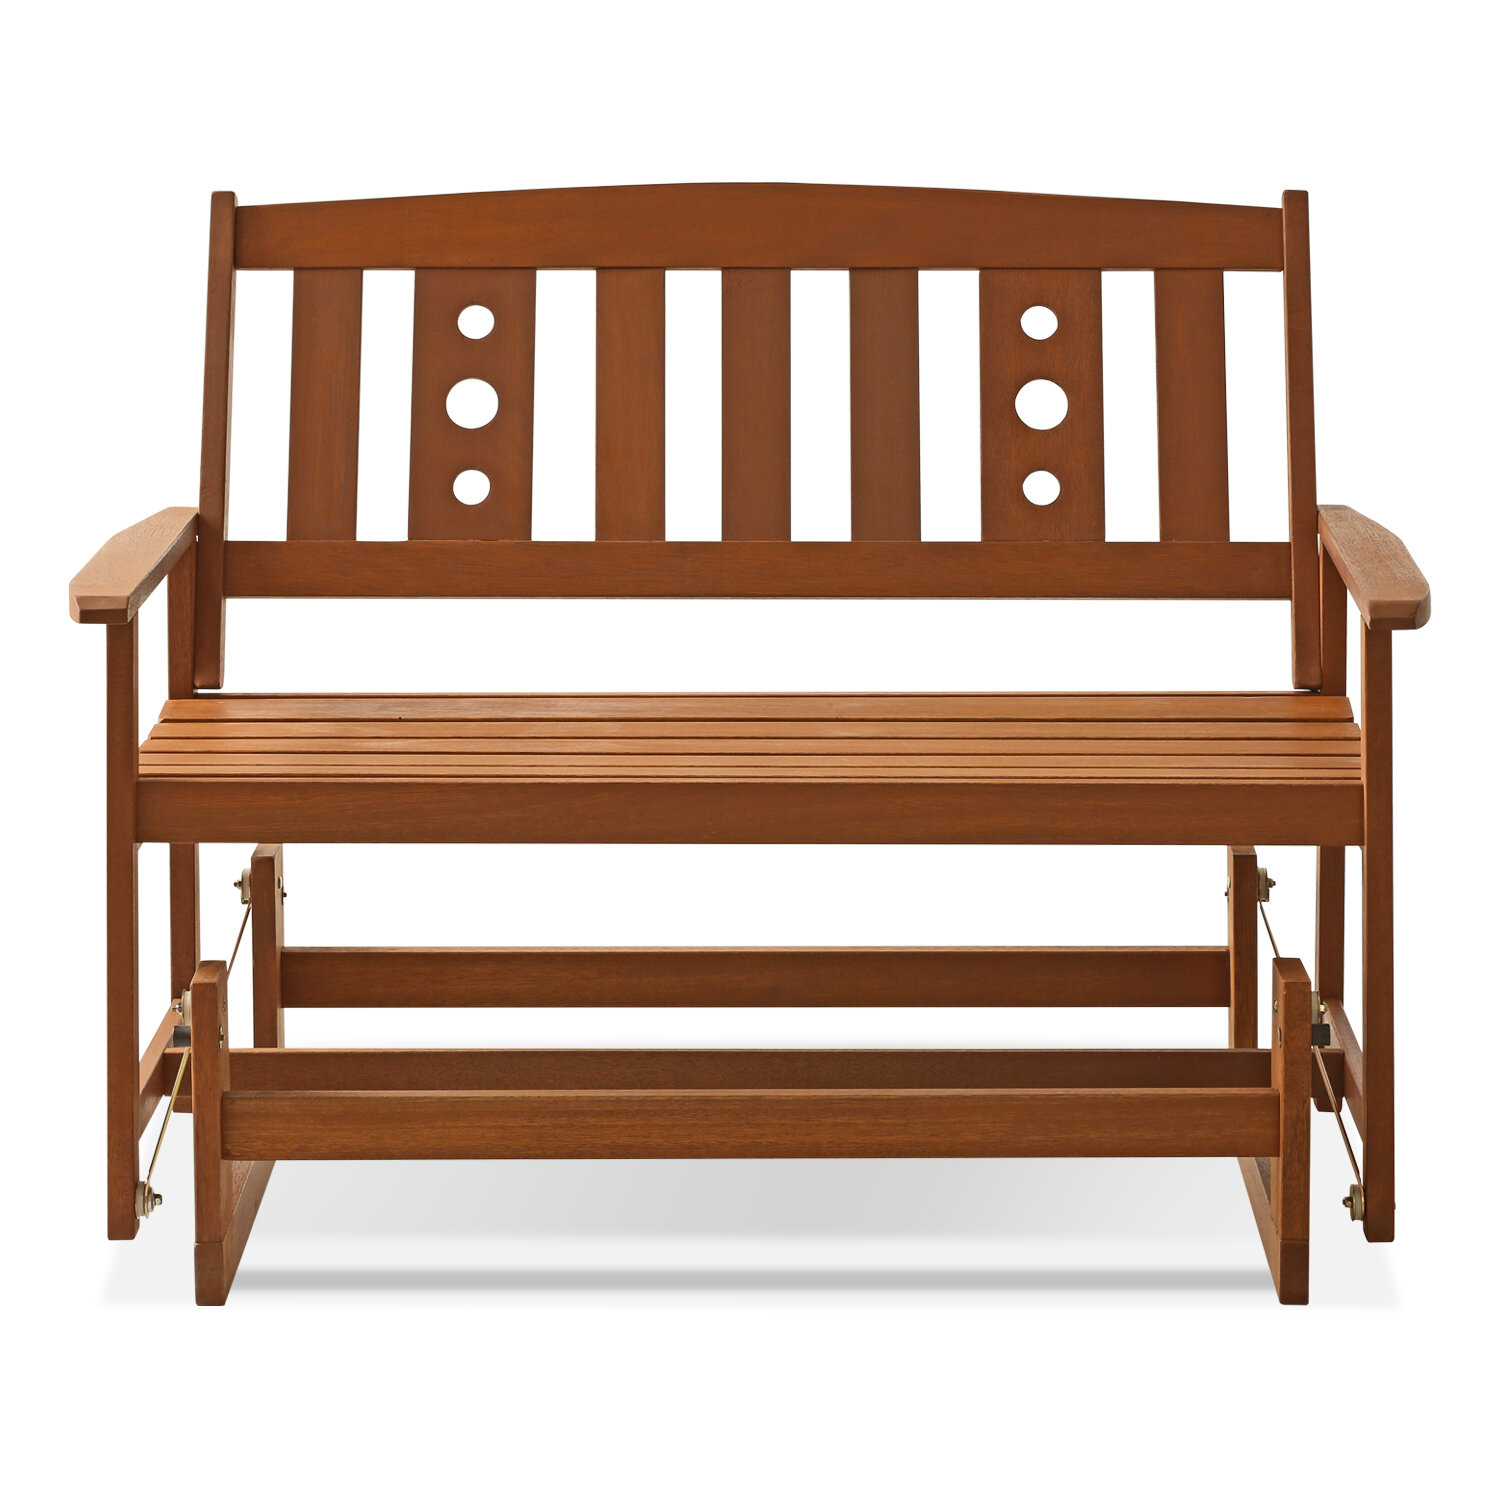 Langley Street Arianna Glider Bench & Reviews | Wayfair Within Twin Seat Glider Benches (View 8 of 25)